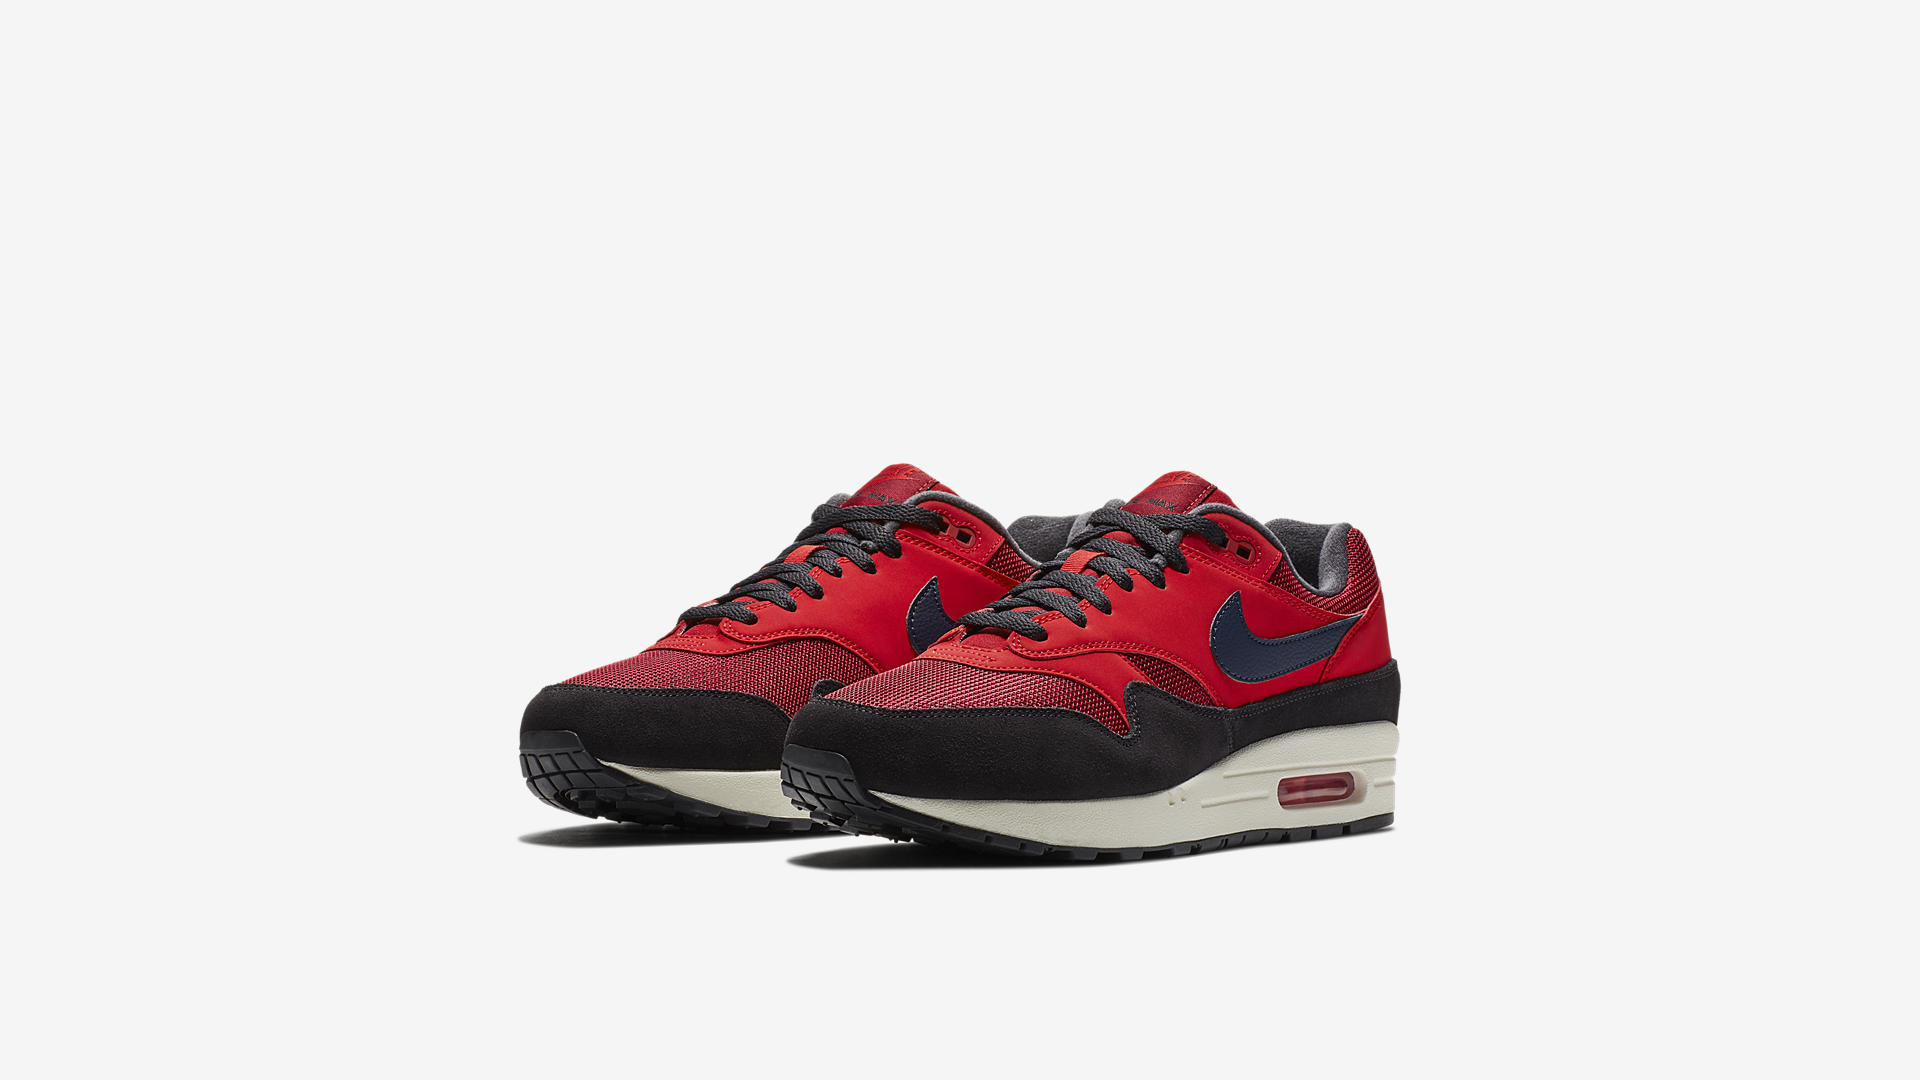 reputable site c3dc9 cd44c Nike Air Max 1 Red Crush / Midnight Navy – University Red (AH8145-600)